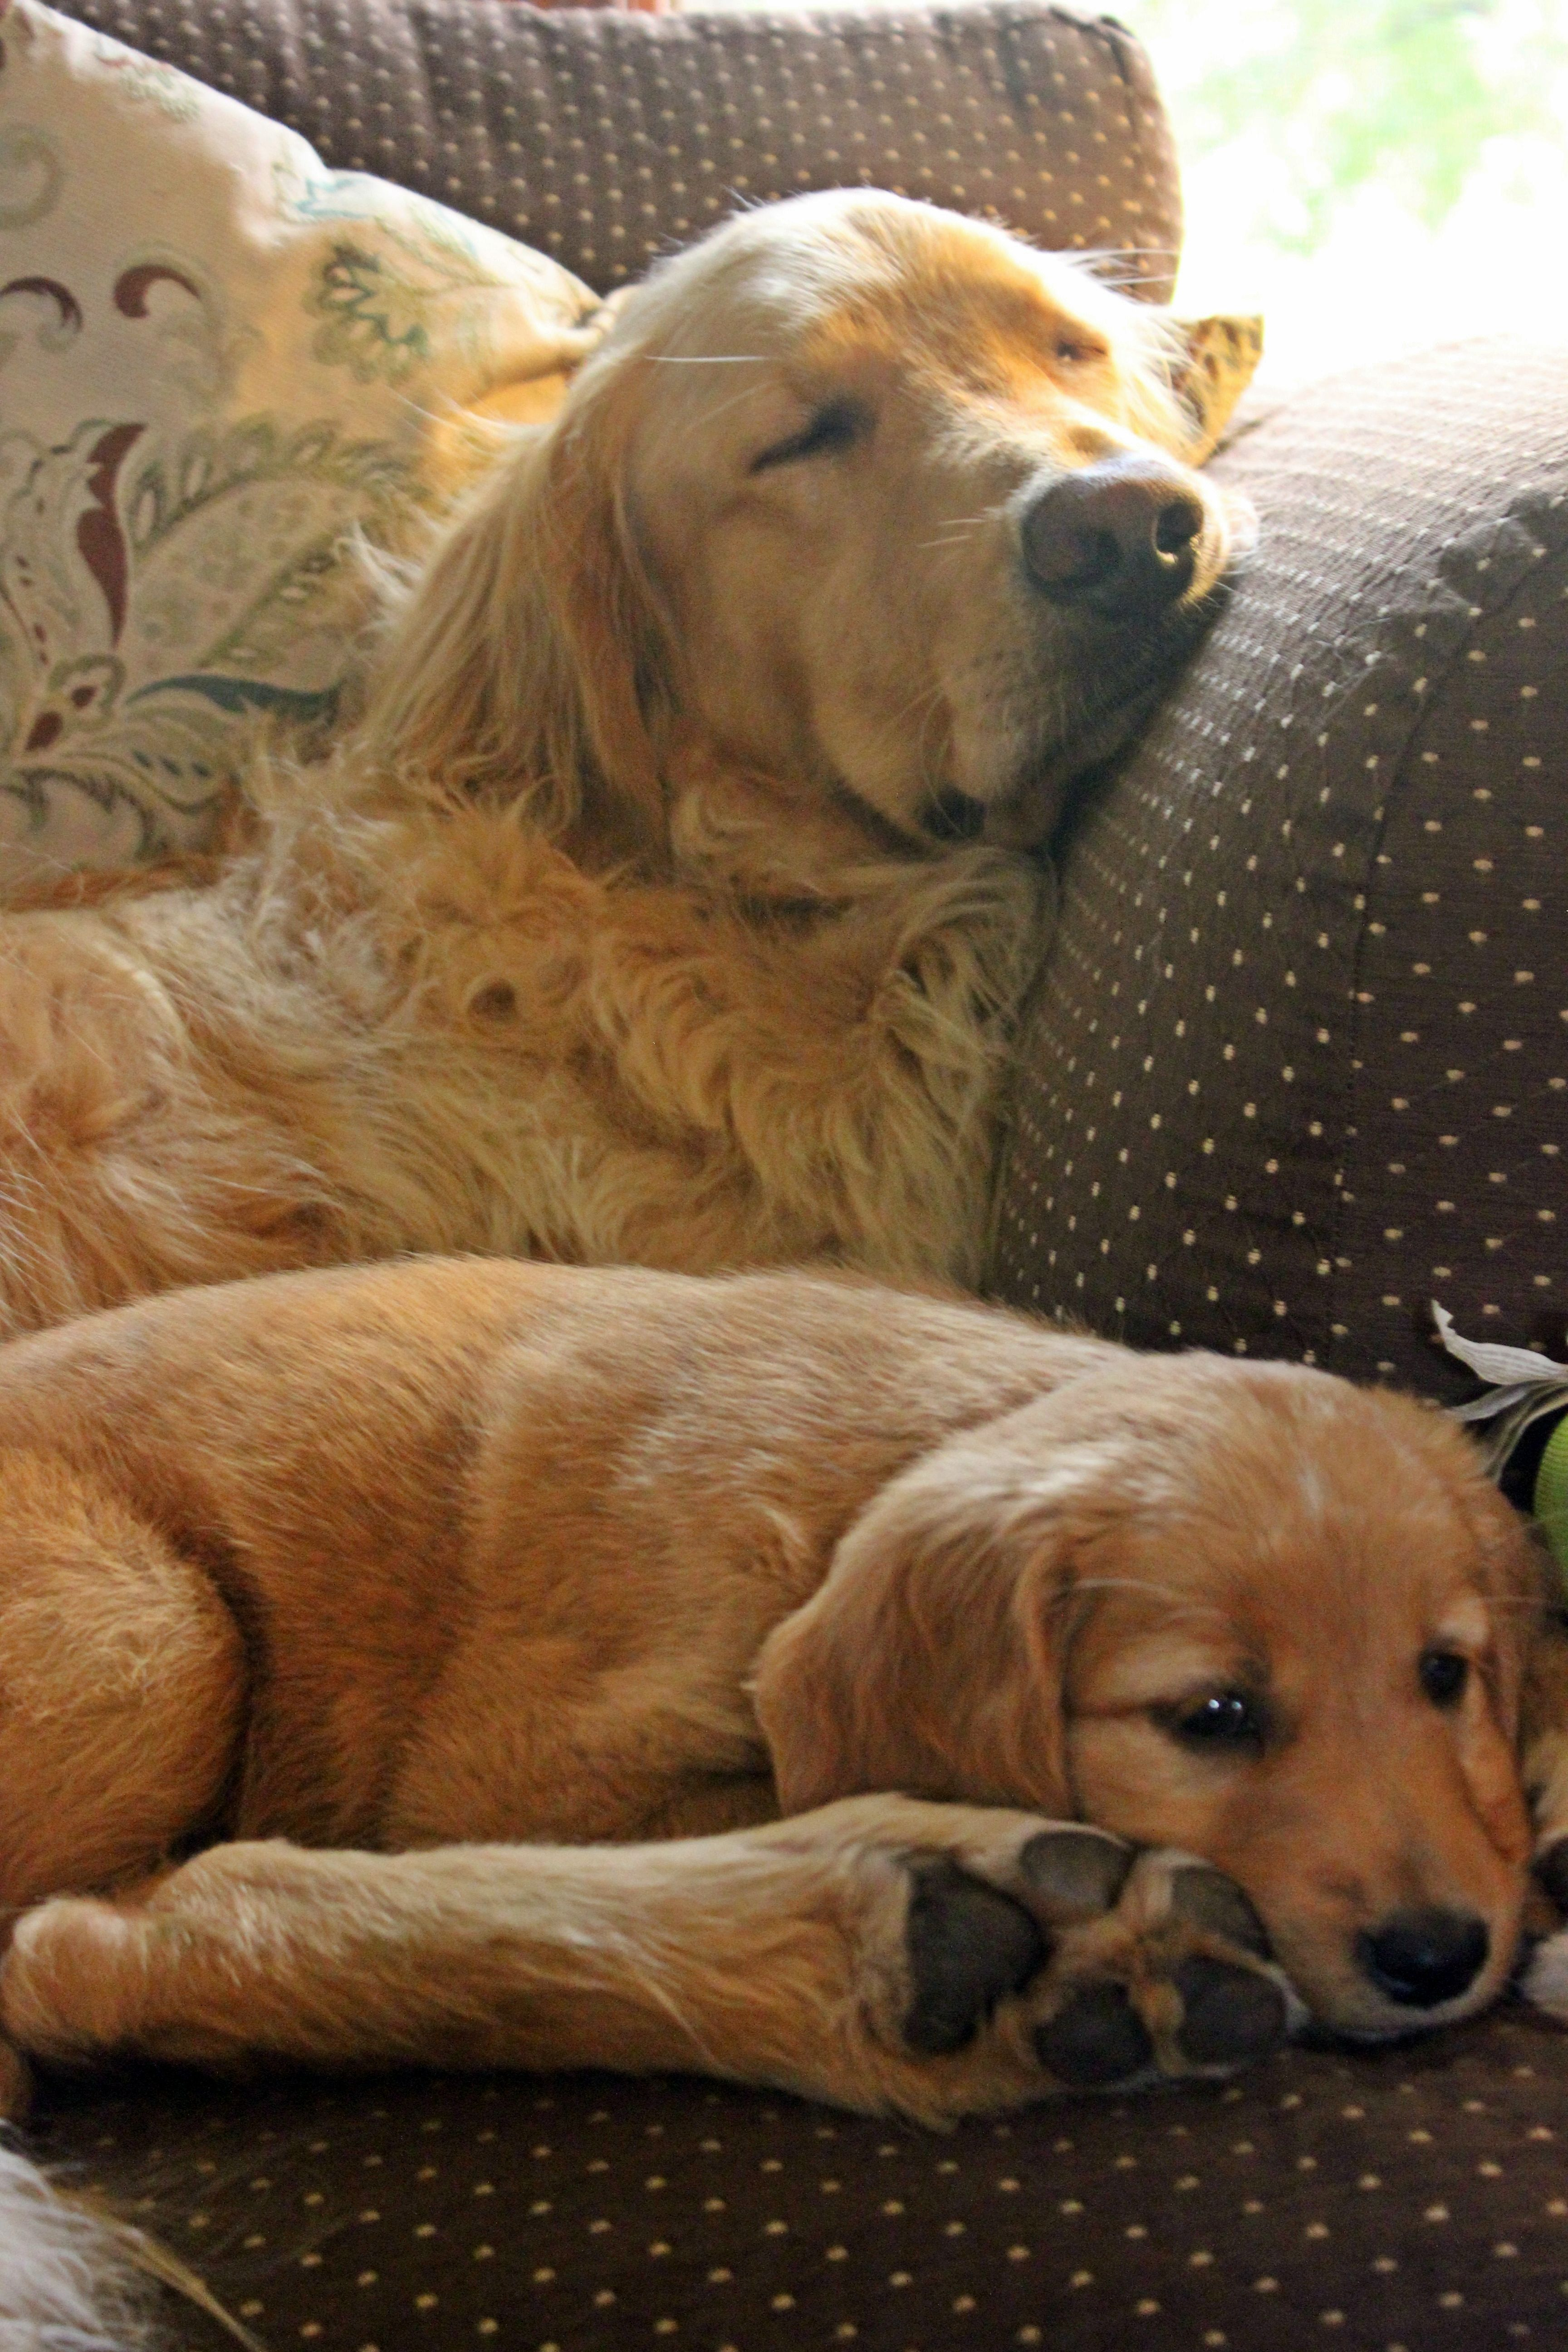 My Golden Retrievers Hollister 3 Yrs And Cadence 7 Wks From